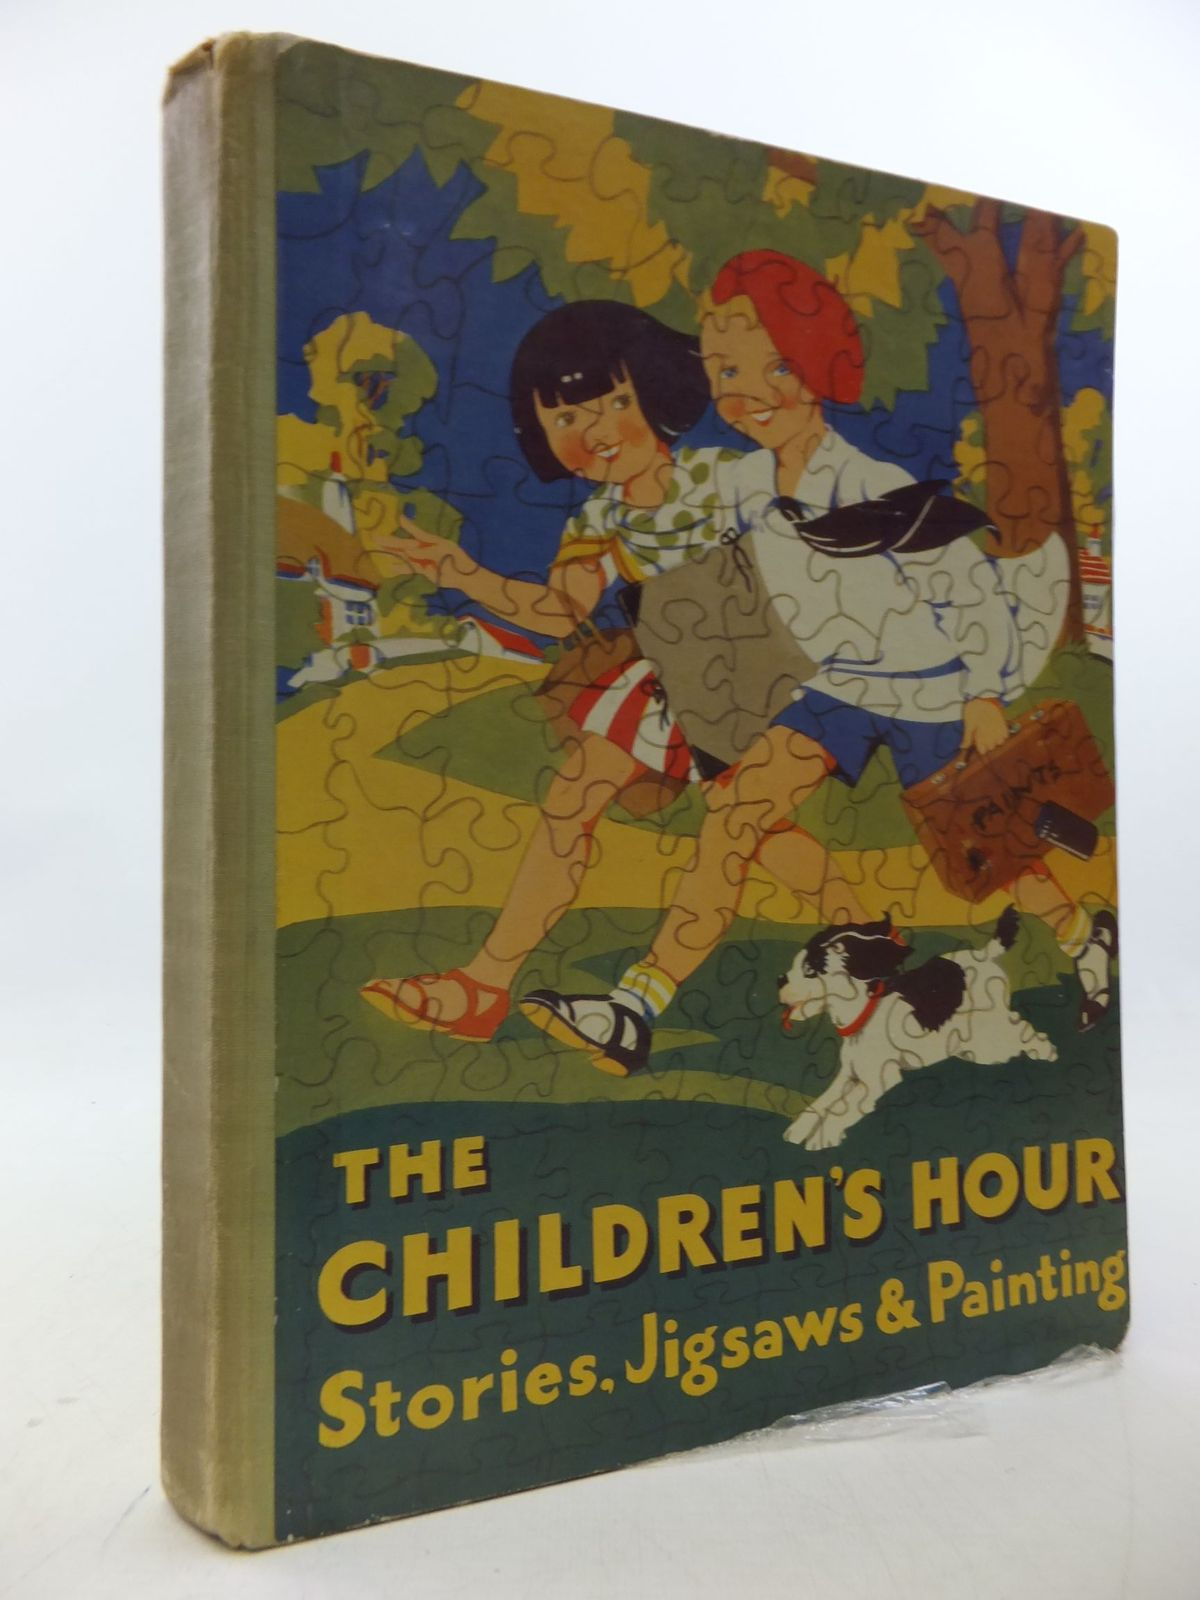 Photo of THE CHILDREN'S HOUR STORIES, JIGSAWS AND PAINTING- Stock Number: 2112942